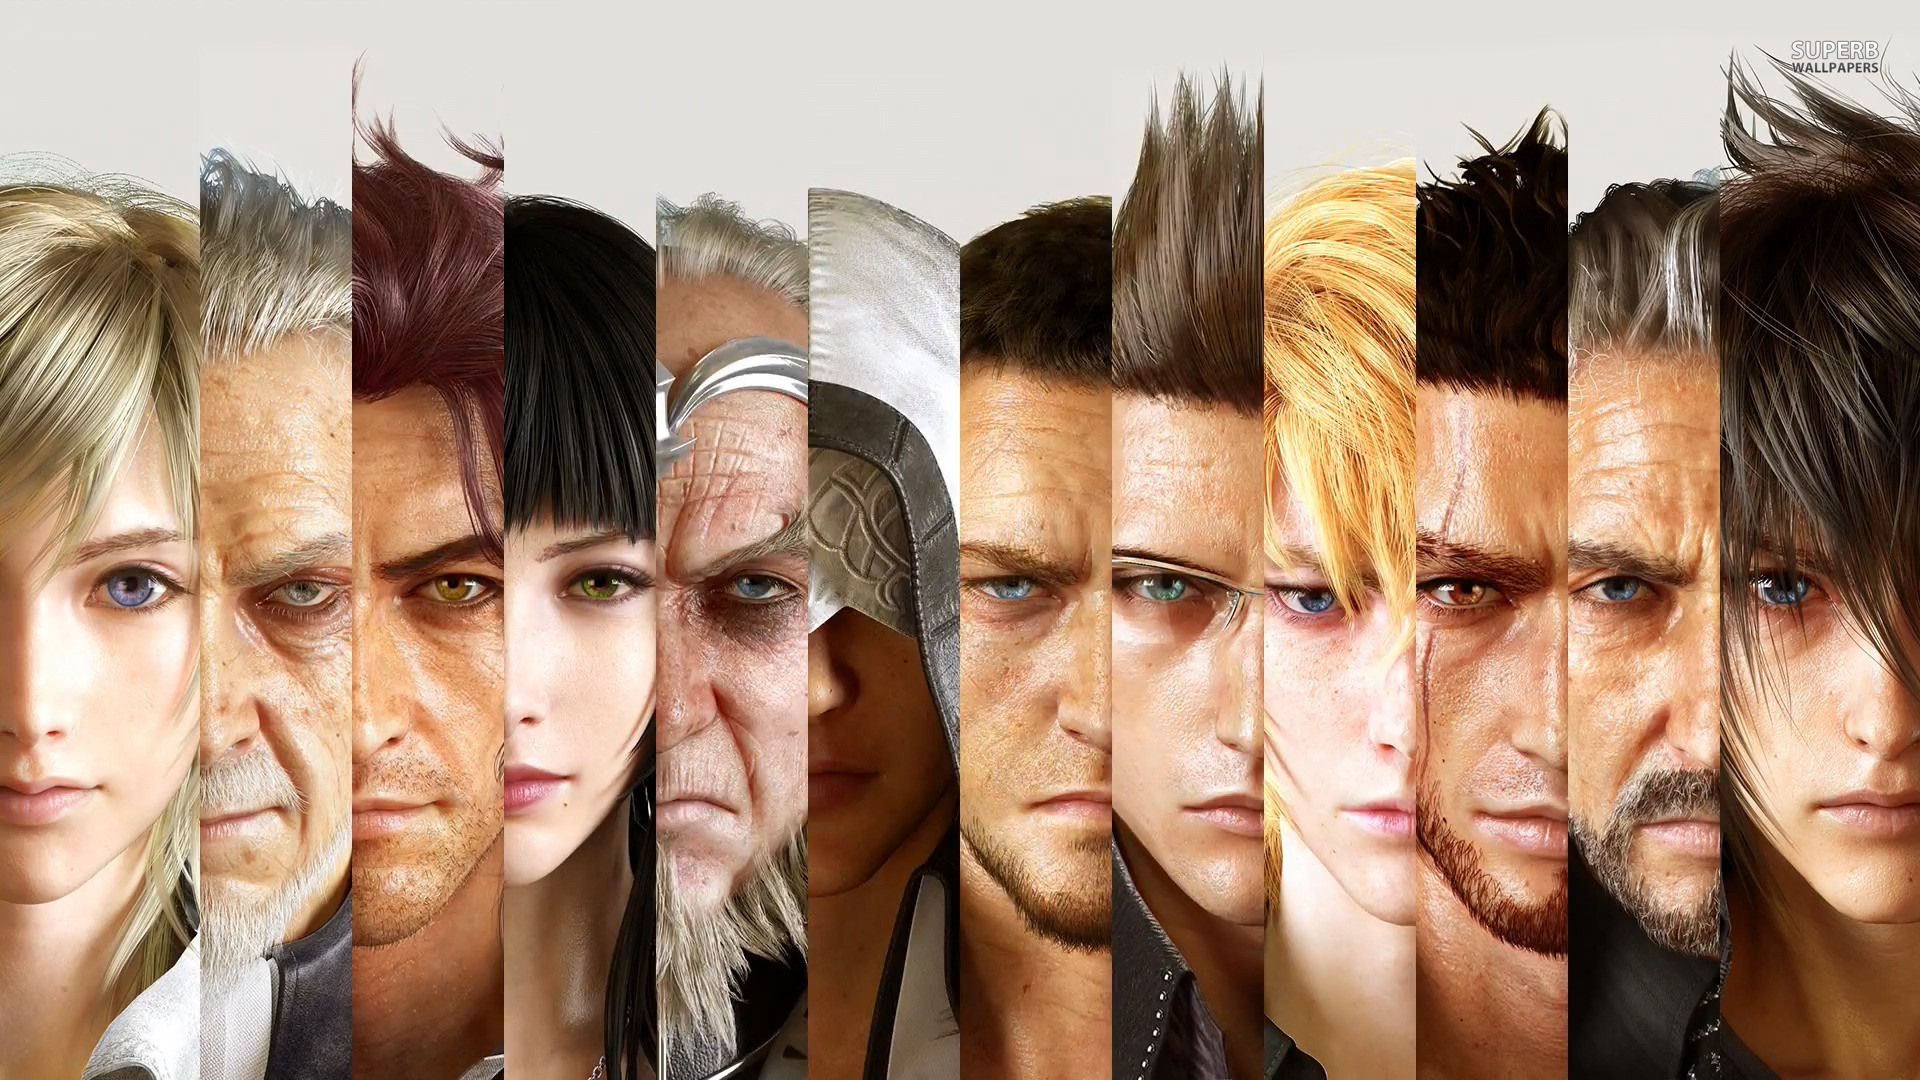 Final Fantasy XV TGS 2014 Trailer | Lord Nomura giveth us His only Son so we